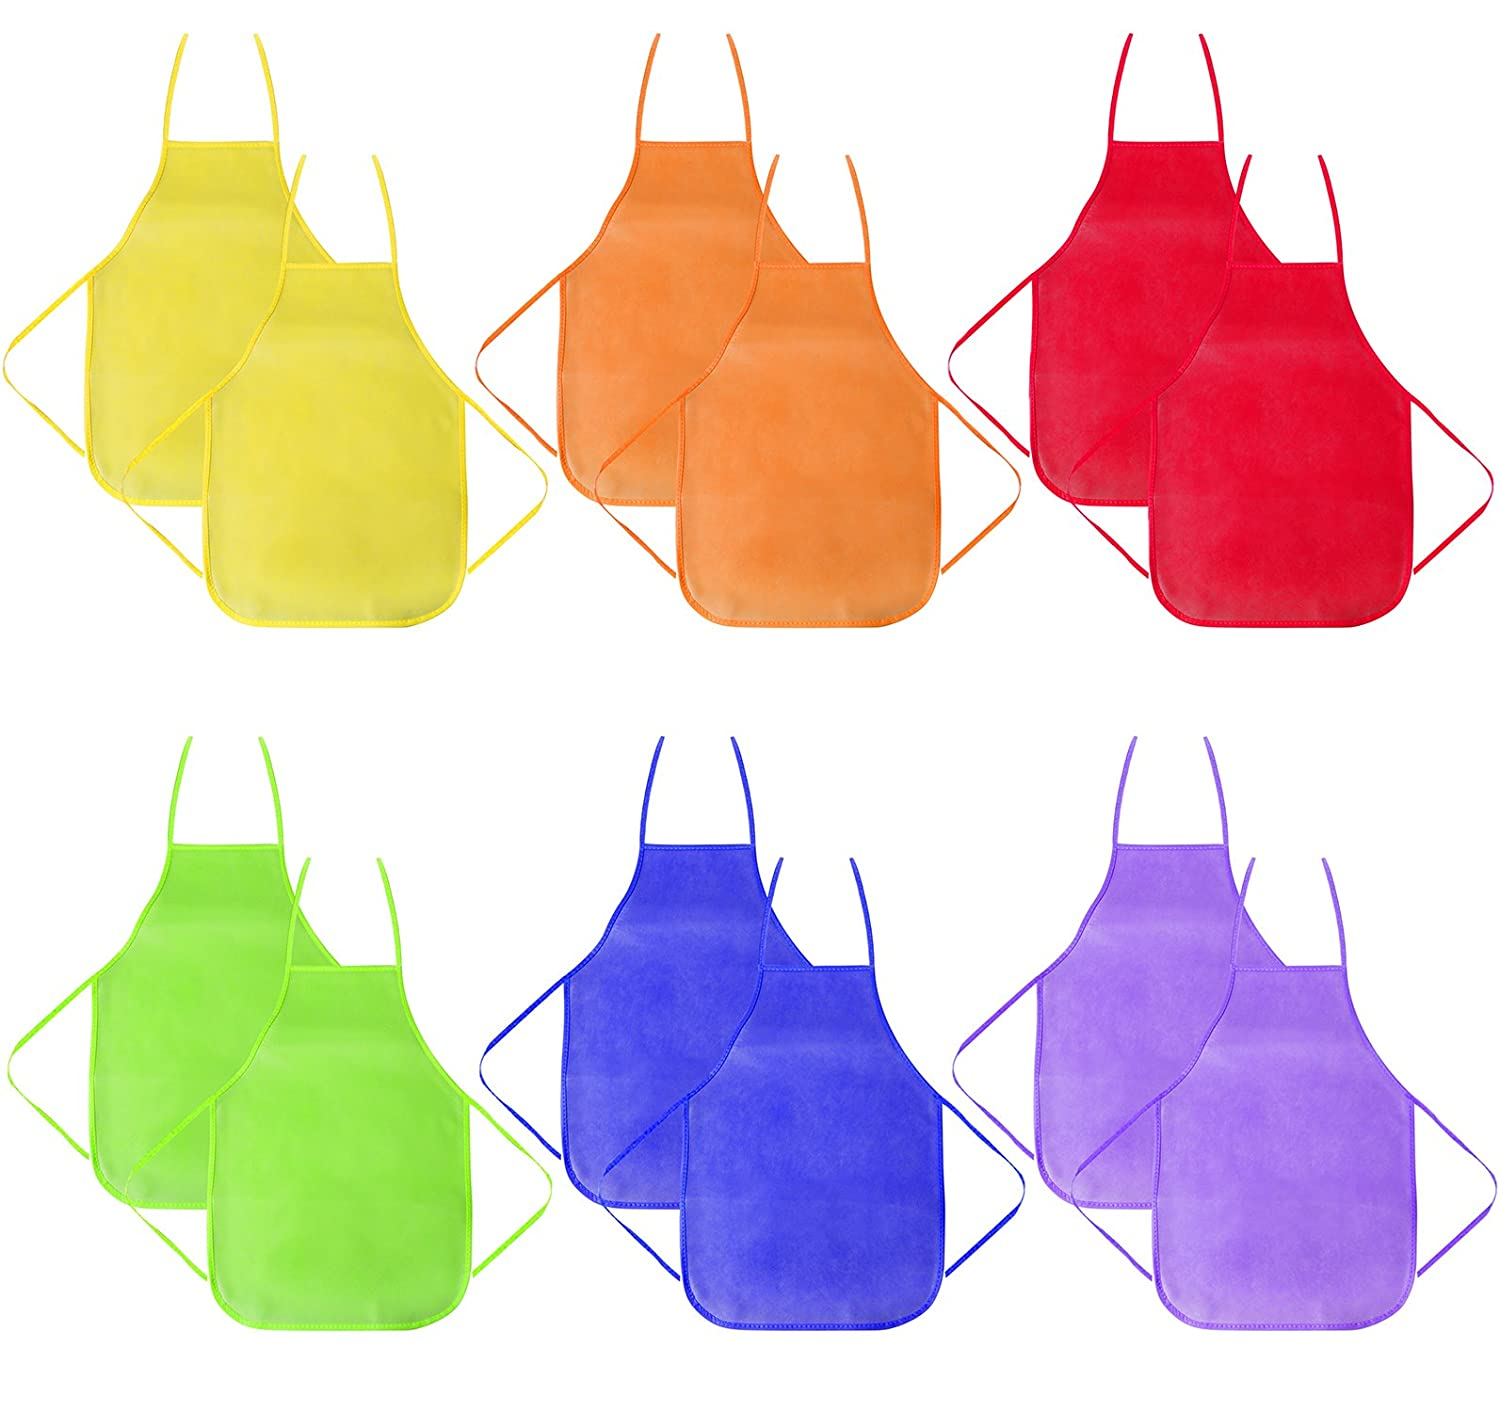 12 Pack 6 Colors Children's Artists Fabric Aprons-Kitchen, Classroom, Community Event, Crafts & Art Painting Activity-Safe Clean for Kids Painting Apron Attmu BBB-122-1